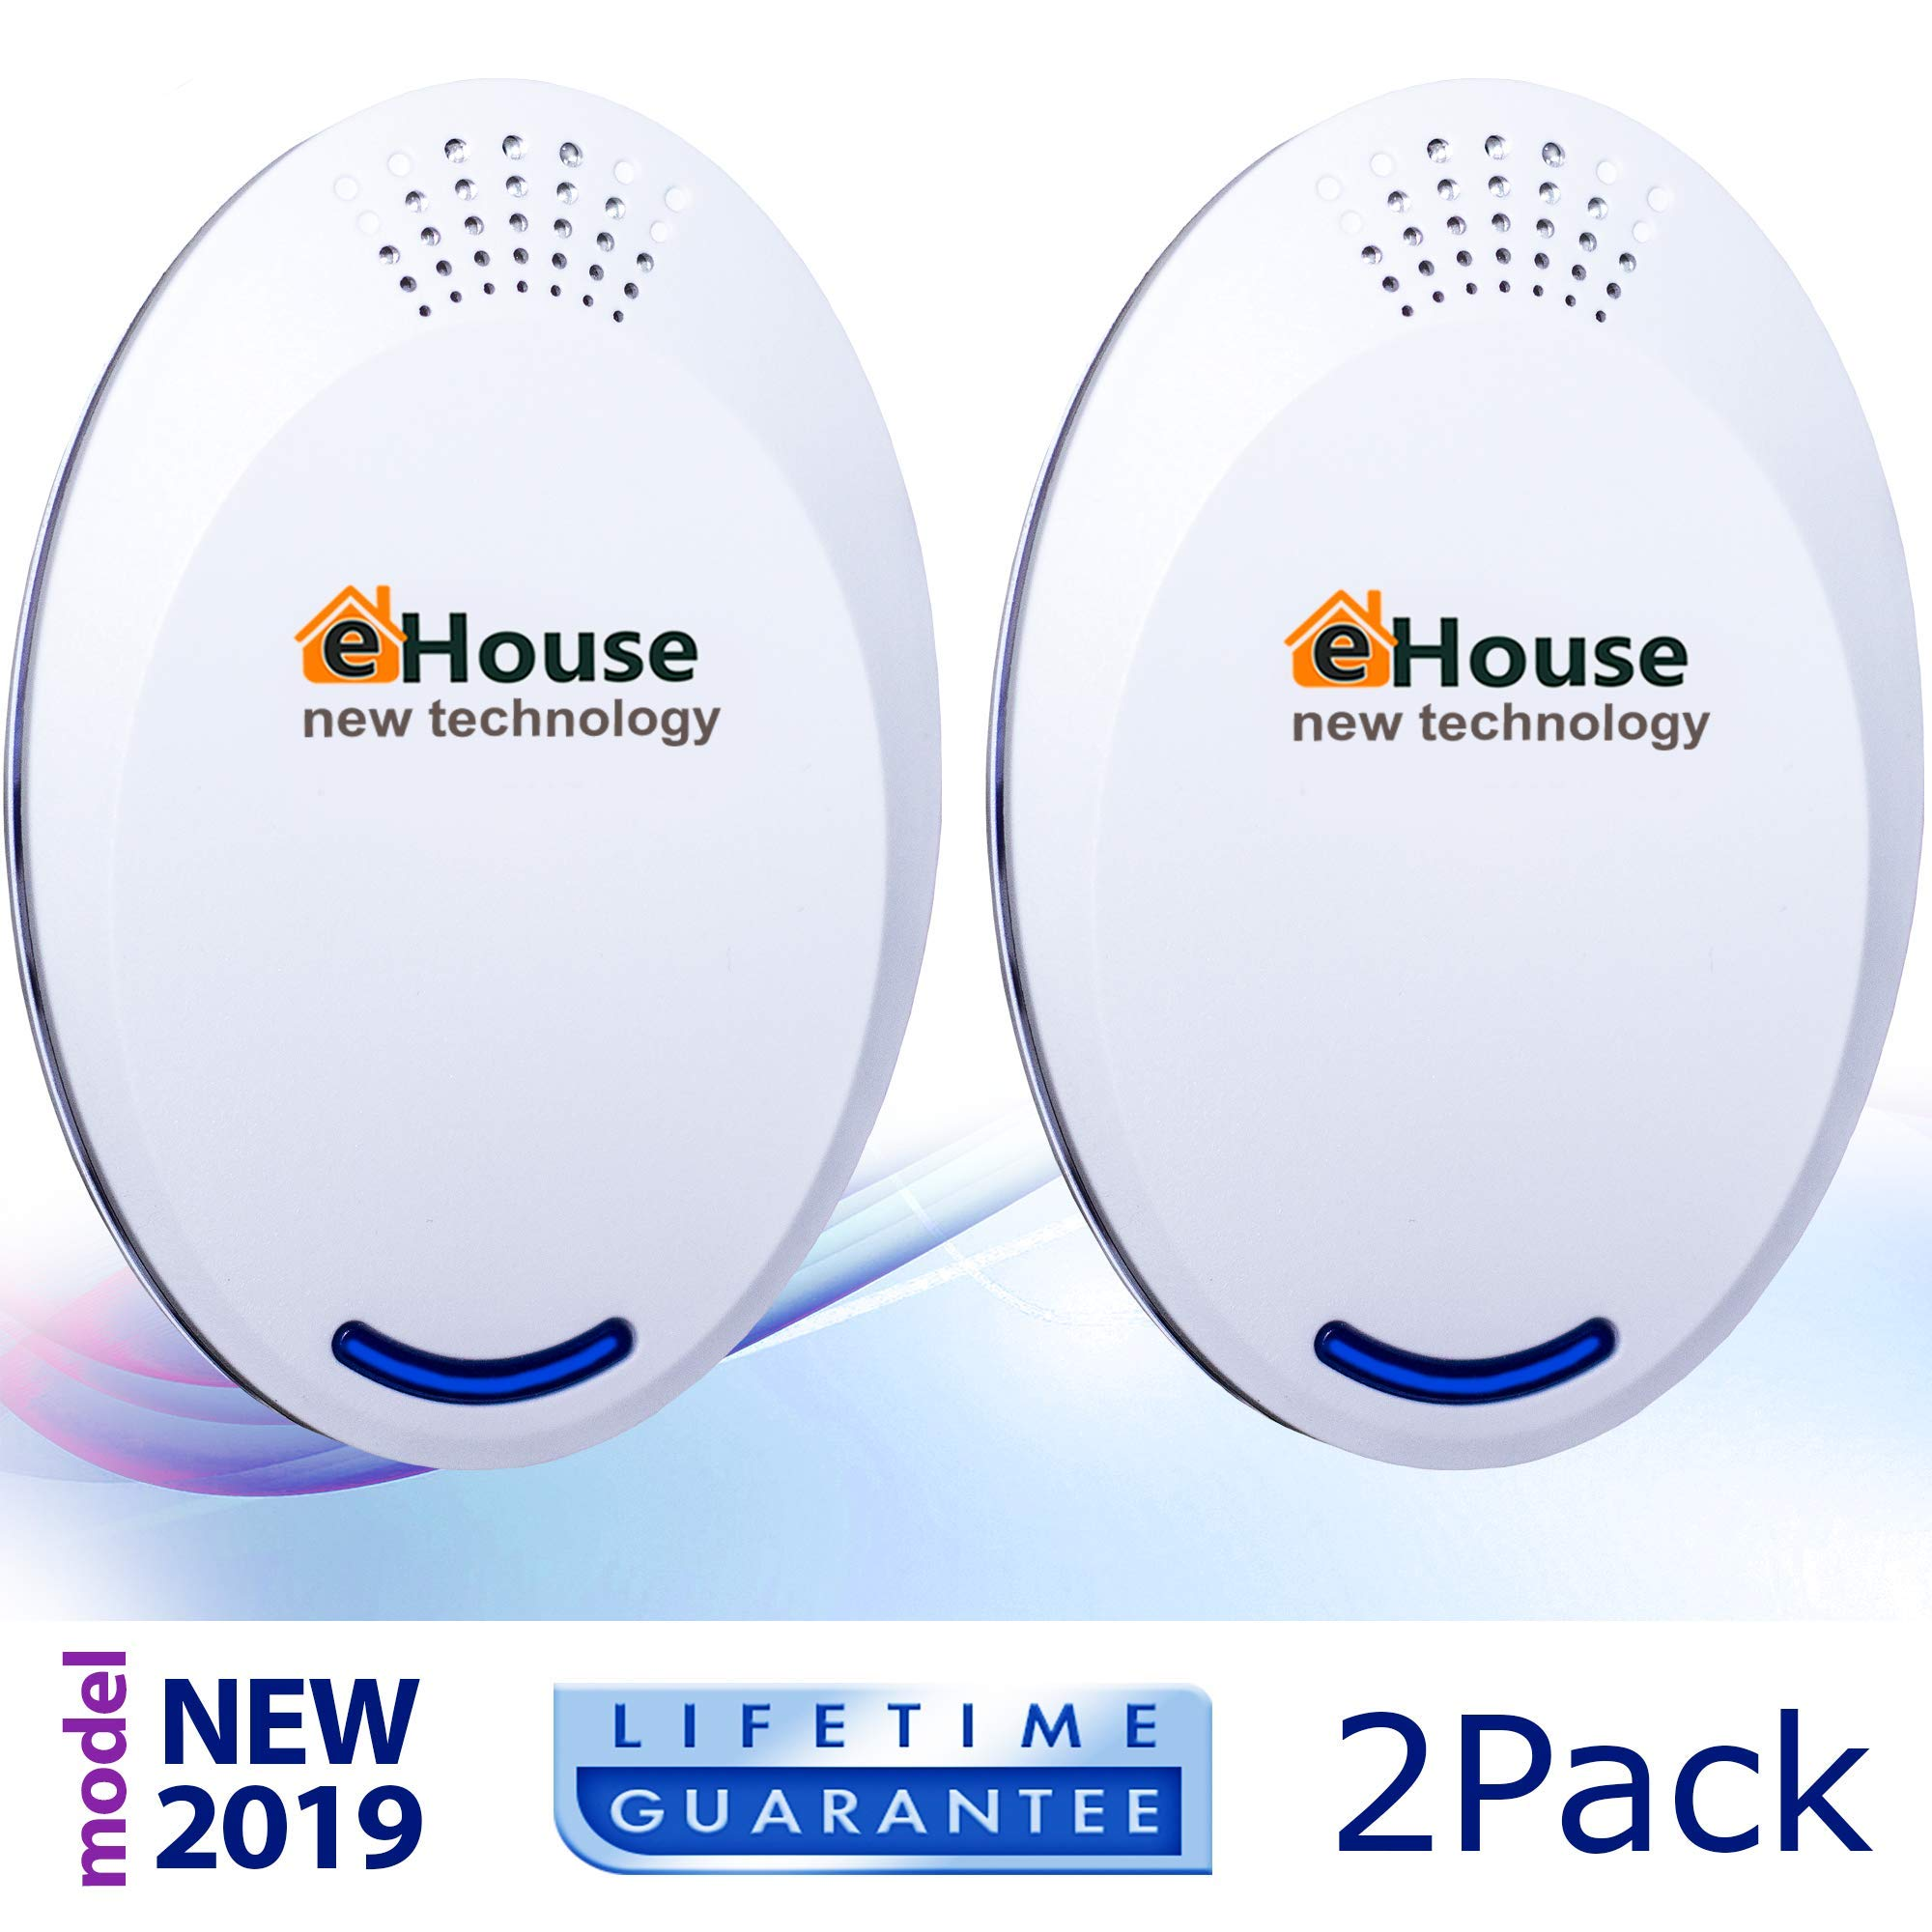 Ultrasonic Electronic Repellent - Best Plug in - Get Rid Of - Rodents, Squirrels, Mice, Rats, Bats, Insects - Roaches, Spiders, Fleas, Bed Bugs, Flies, Ants, Mosquitos, Fruit Fly! 2Pack (Model BH4) by EHOUSE